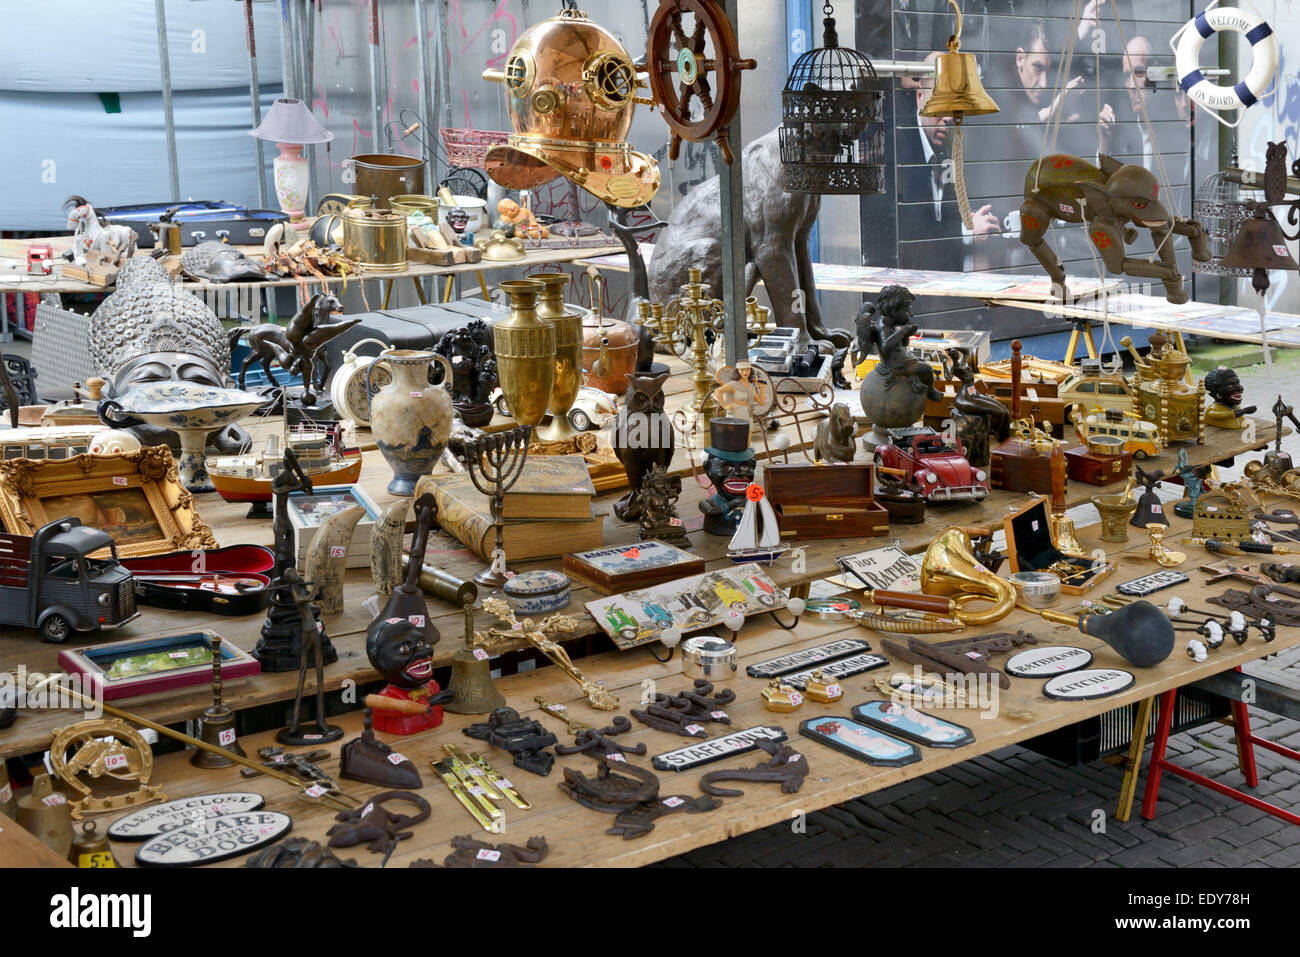 Market stall at Waterlooplein Market, Amsterdam, North Holland, Netherlands, Europe - Stock Image